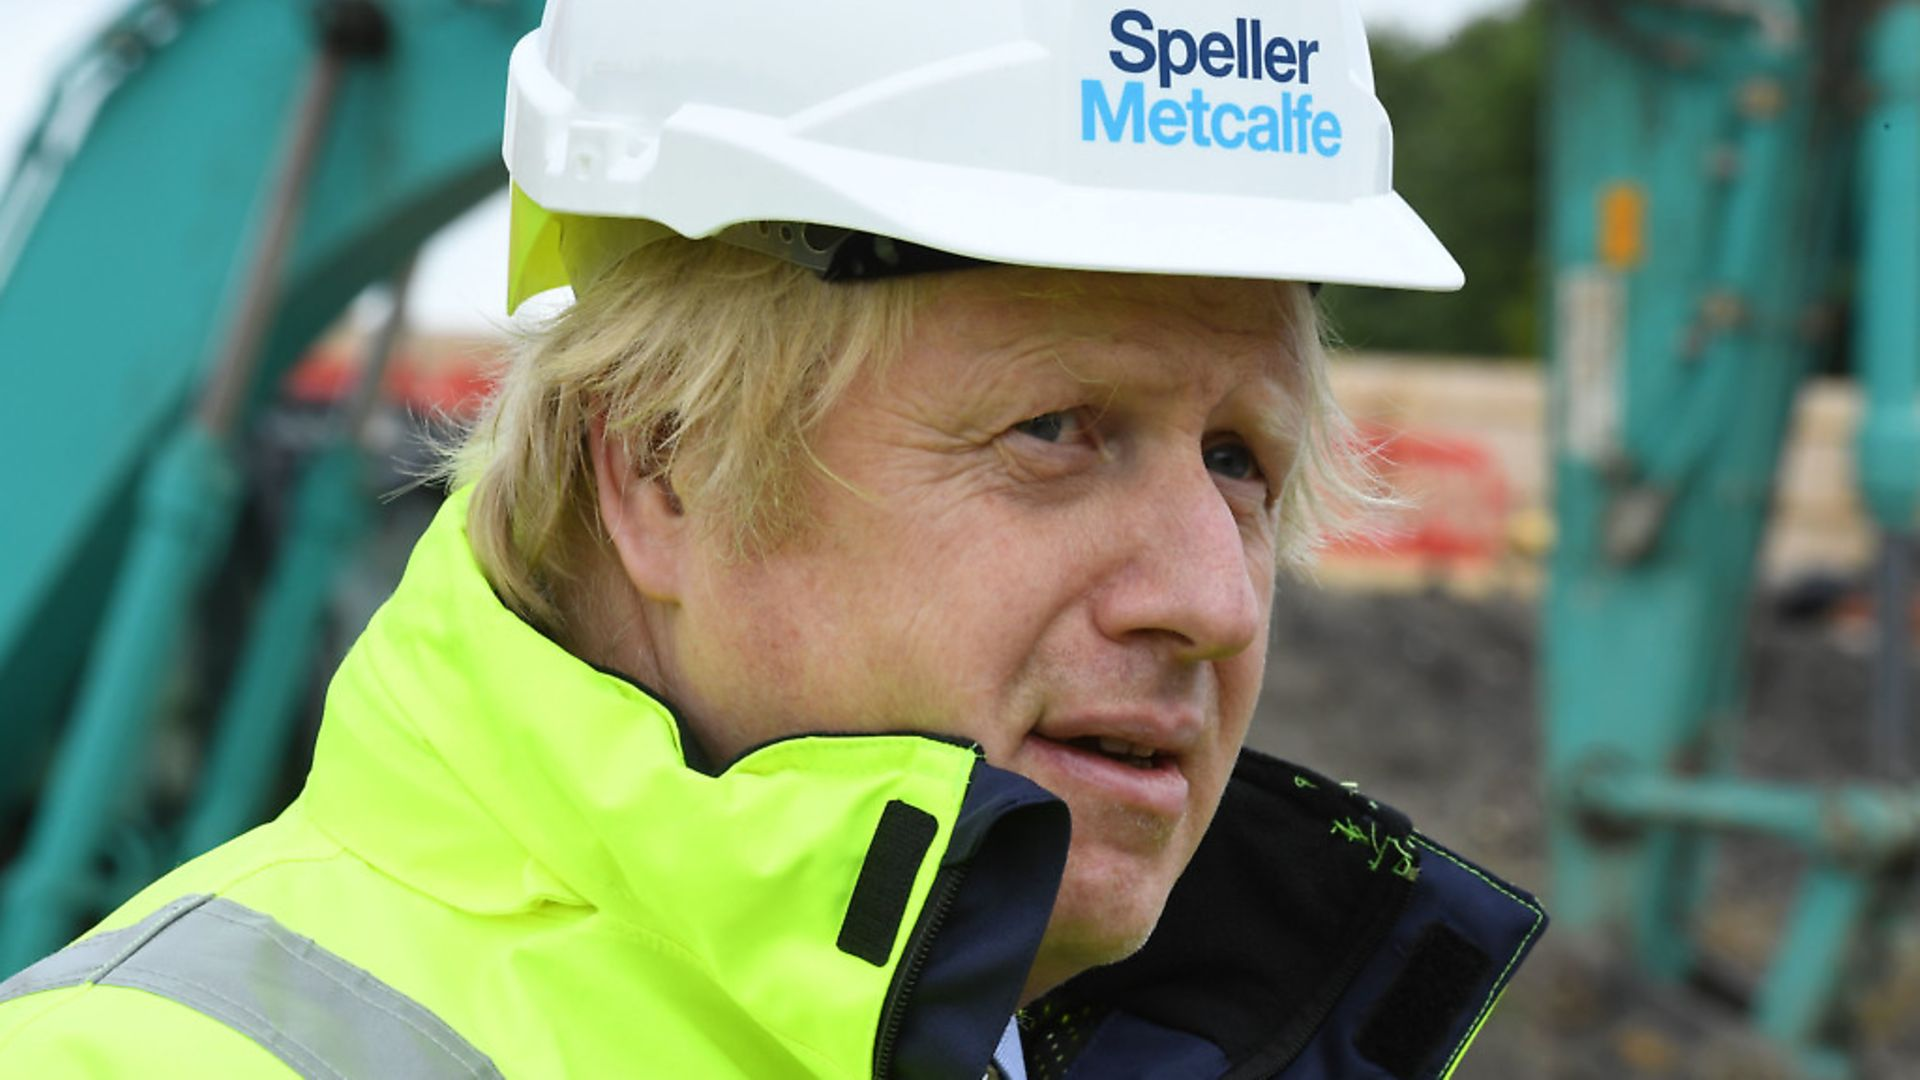 Prime Minister Boris Johnson during a visit to the Speller Metcalfe's building site at The Dudley Institute of Technology. Photograph: Jeremy Selwyn/Evening Standard/PA Wire. - Credit: PA